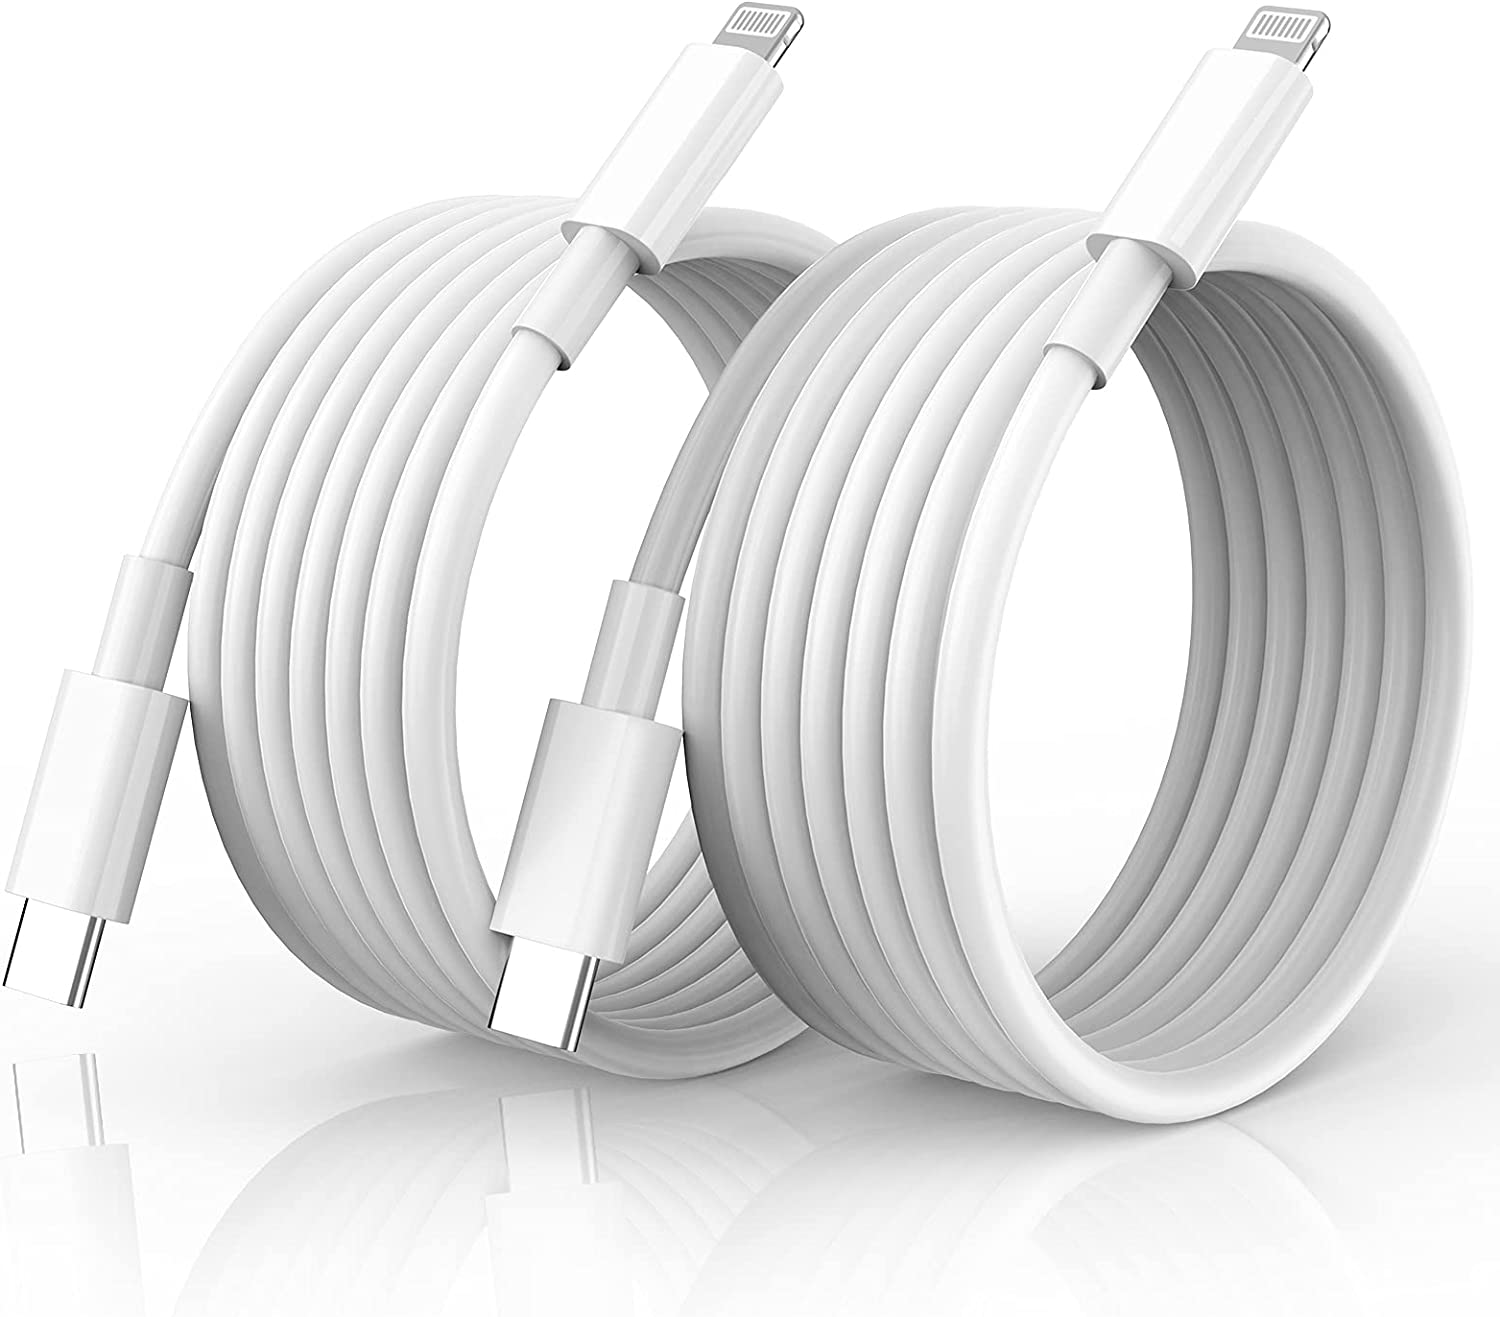 USB C to Lightning Cable 10FT, 2 Pack [MFi Certified] iPhone Fast Charger Cord, Lightning to Type C Charger Cable for iPhone 13/13ProMax/13Mini/iPhone12 Mini/12 Pro/Max/11 Pro/XS/8Plus/iPad/AirPods.